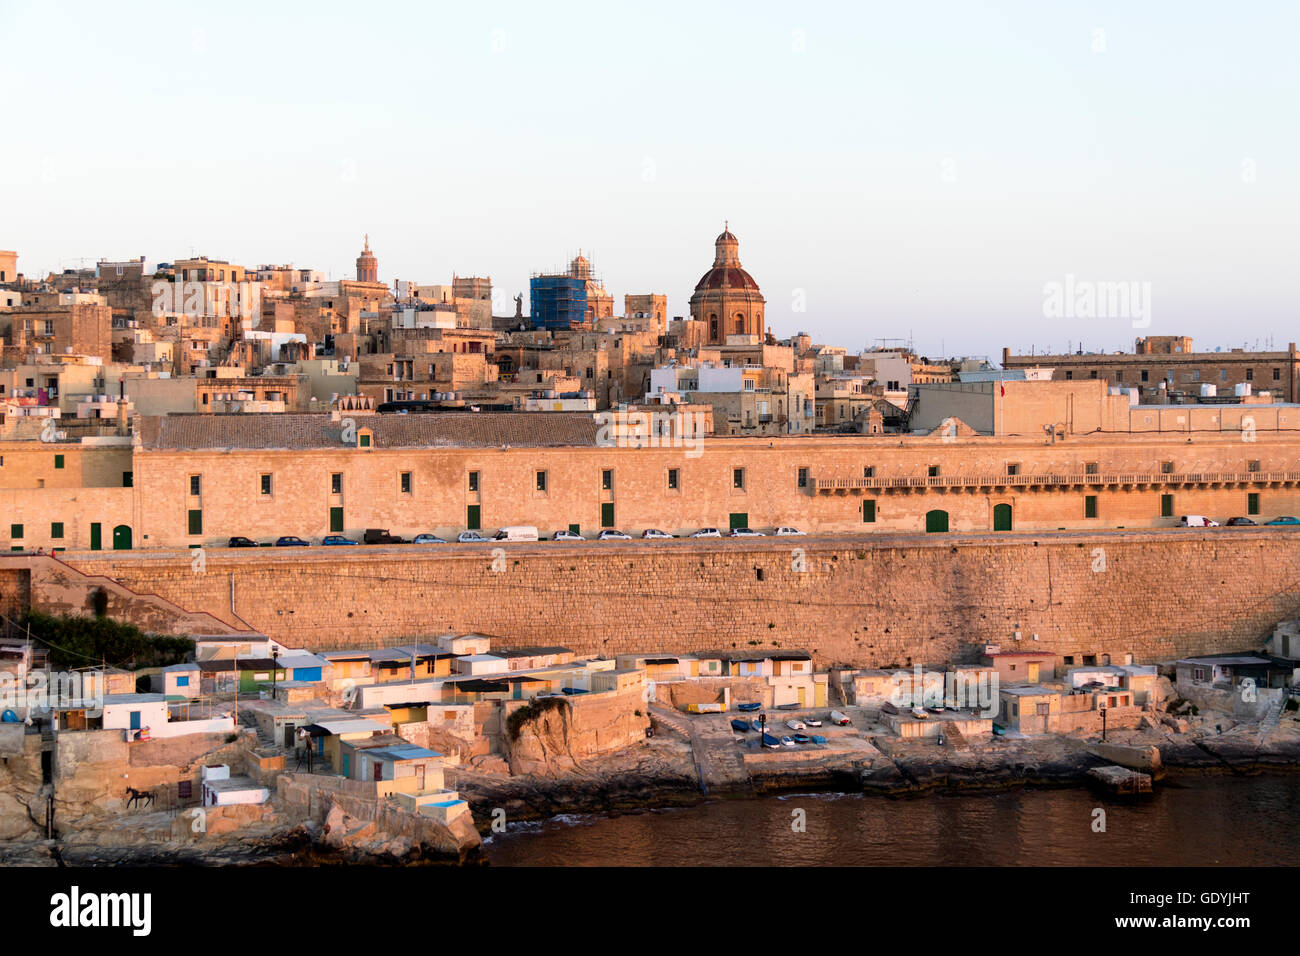 View of Malta's old town and fortifications bathed in early morning sun - Stock Image